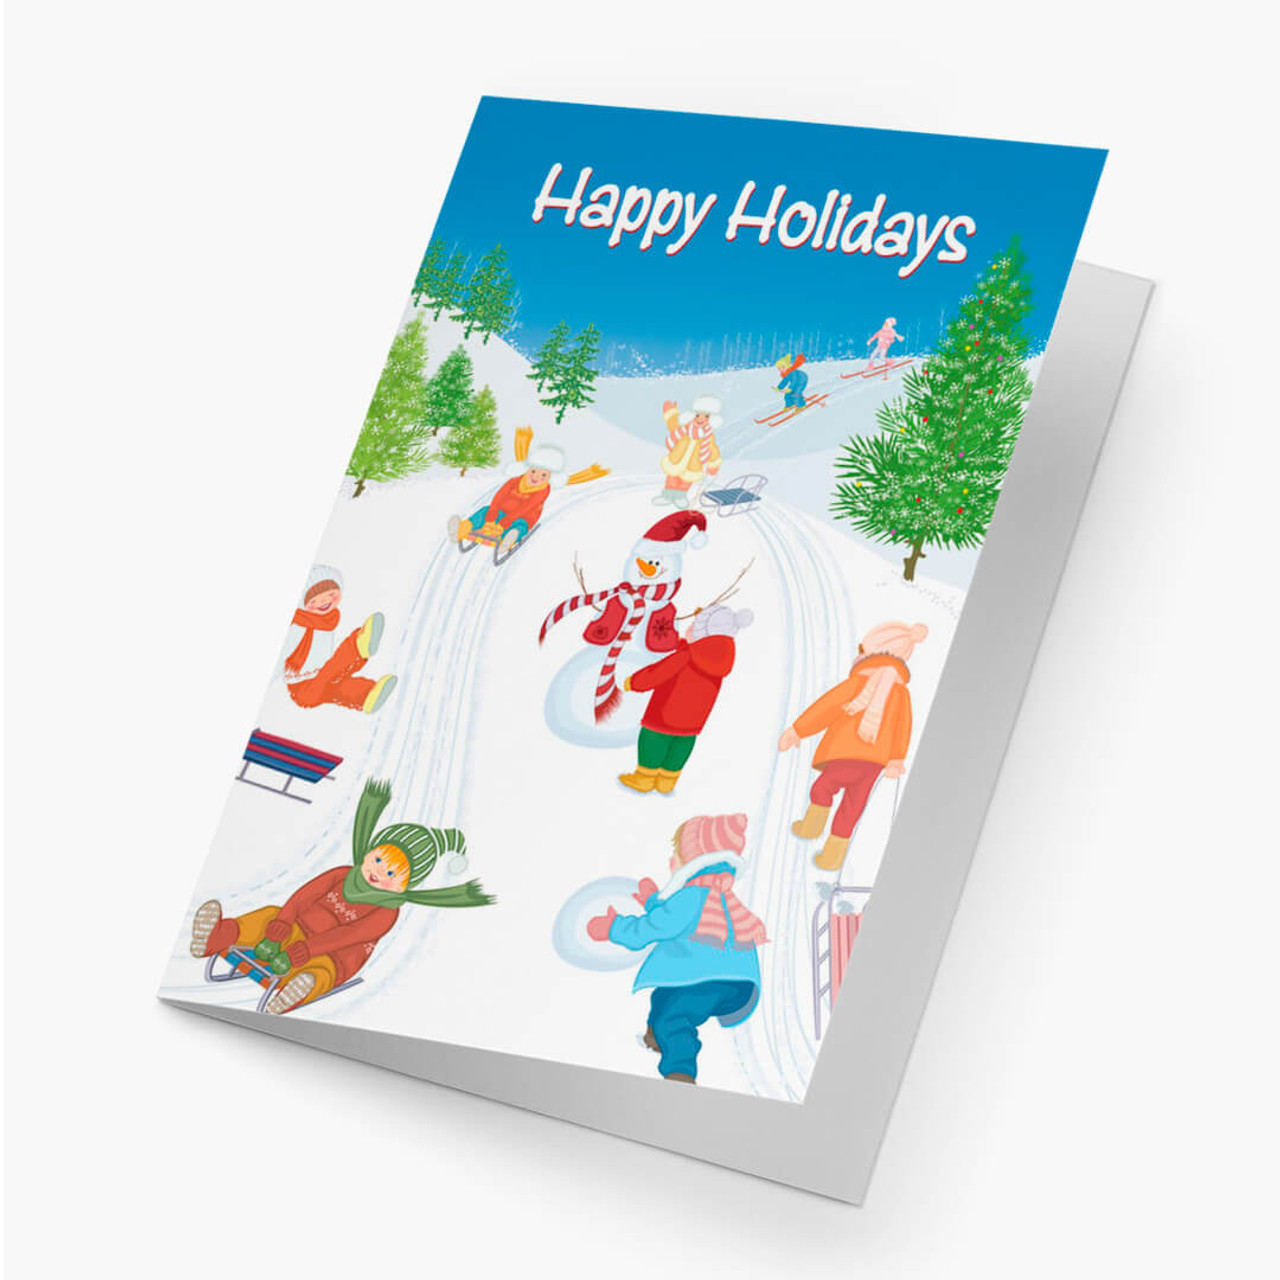 Children At Play Christmas Card